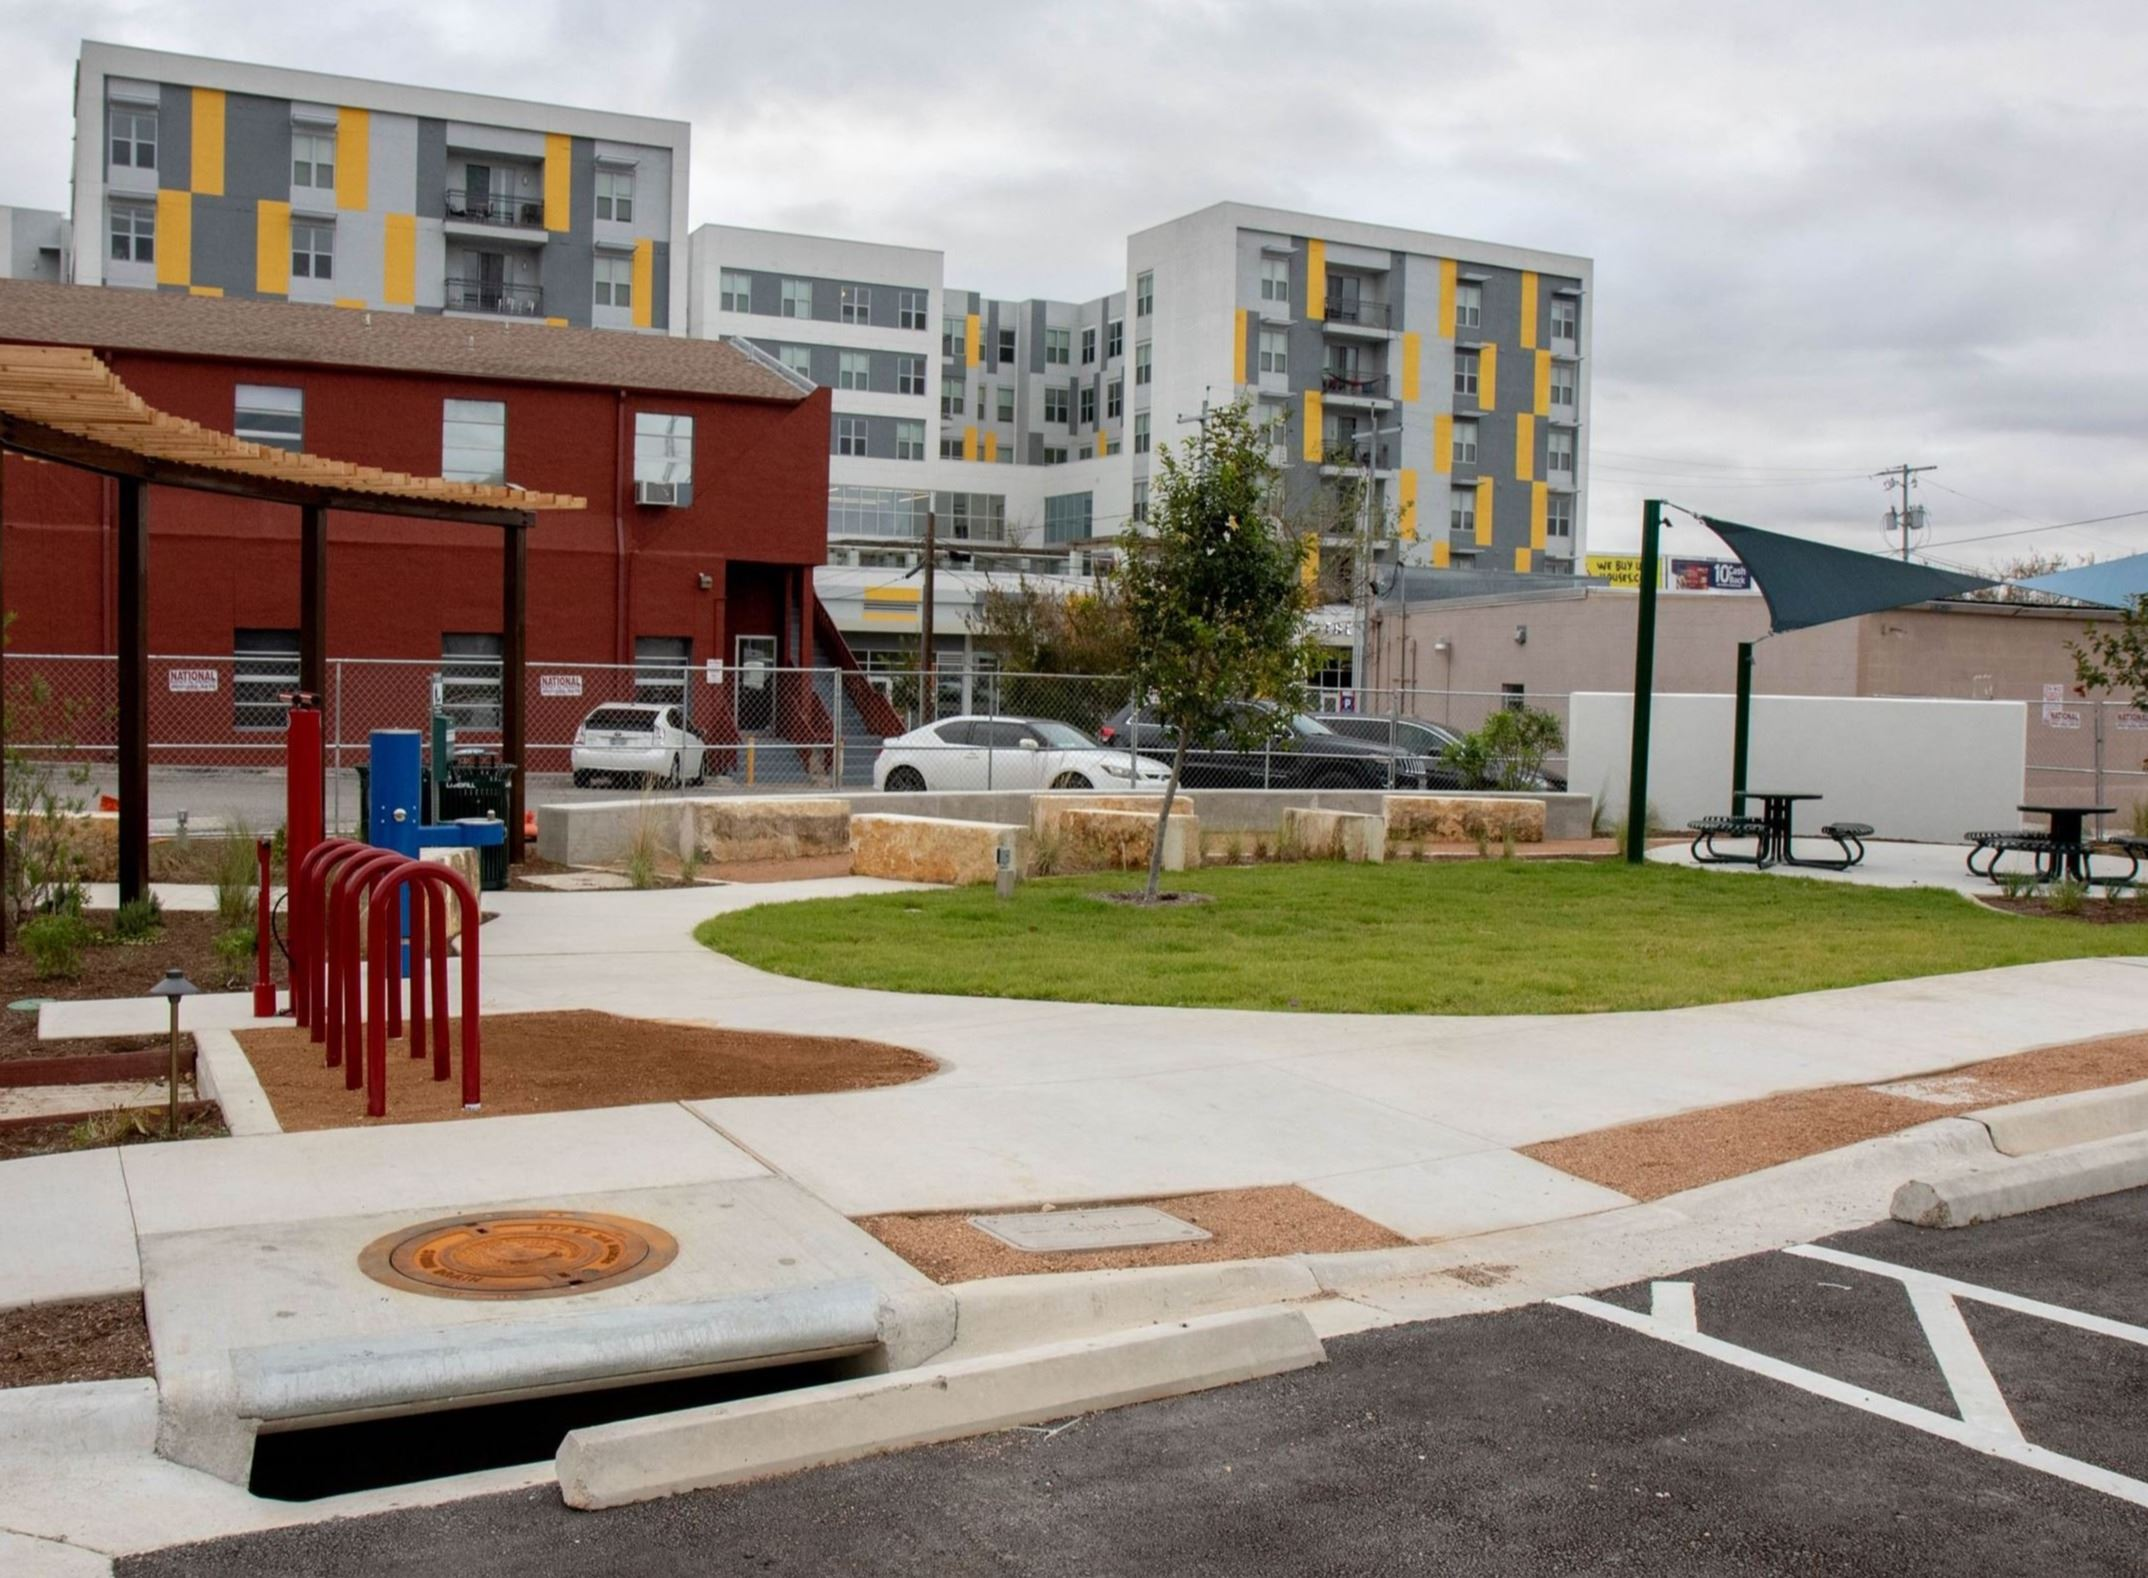 Photo from alley/street angle of Mobility Hub, featuring parking spots, a grassy area, picnic tables